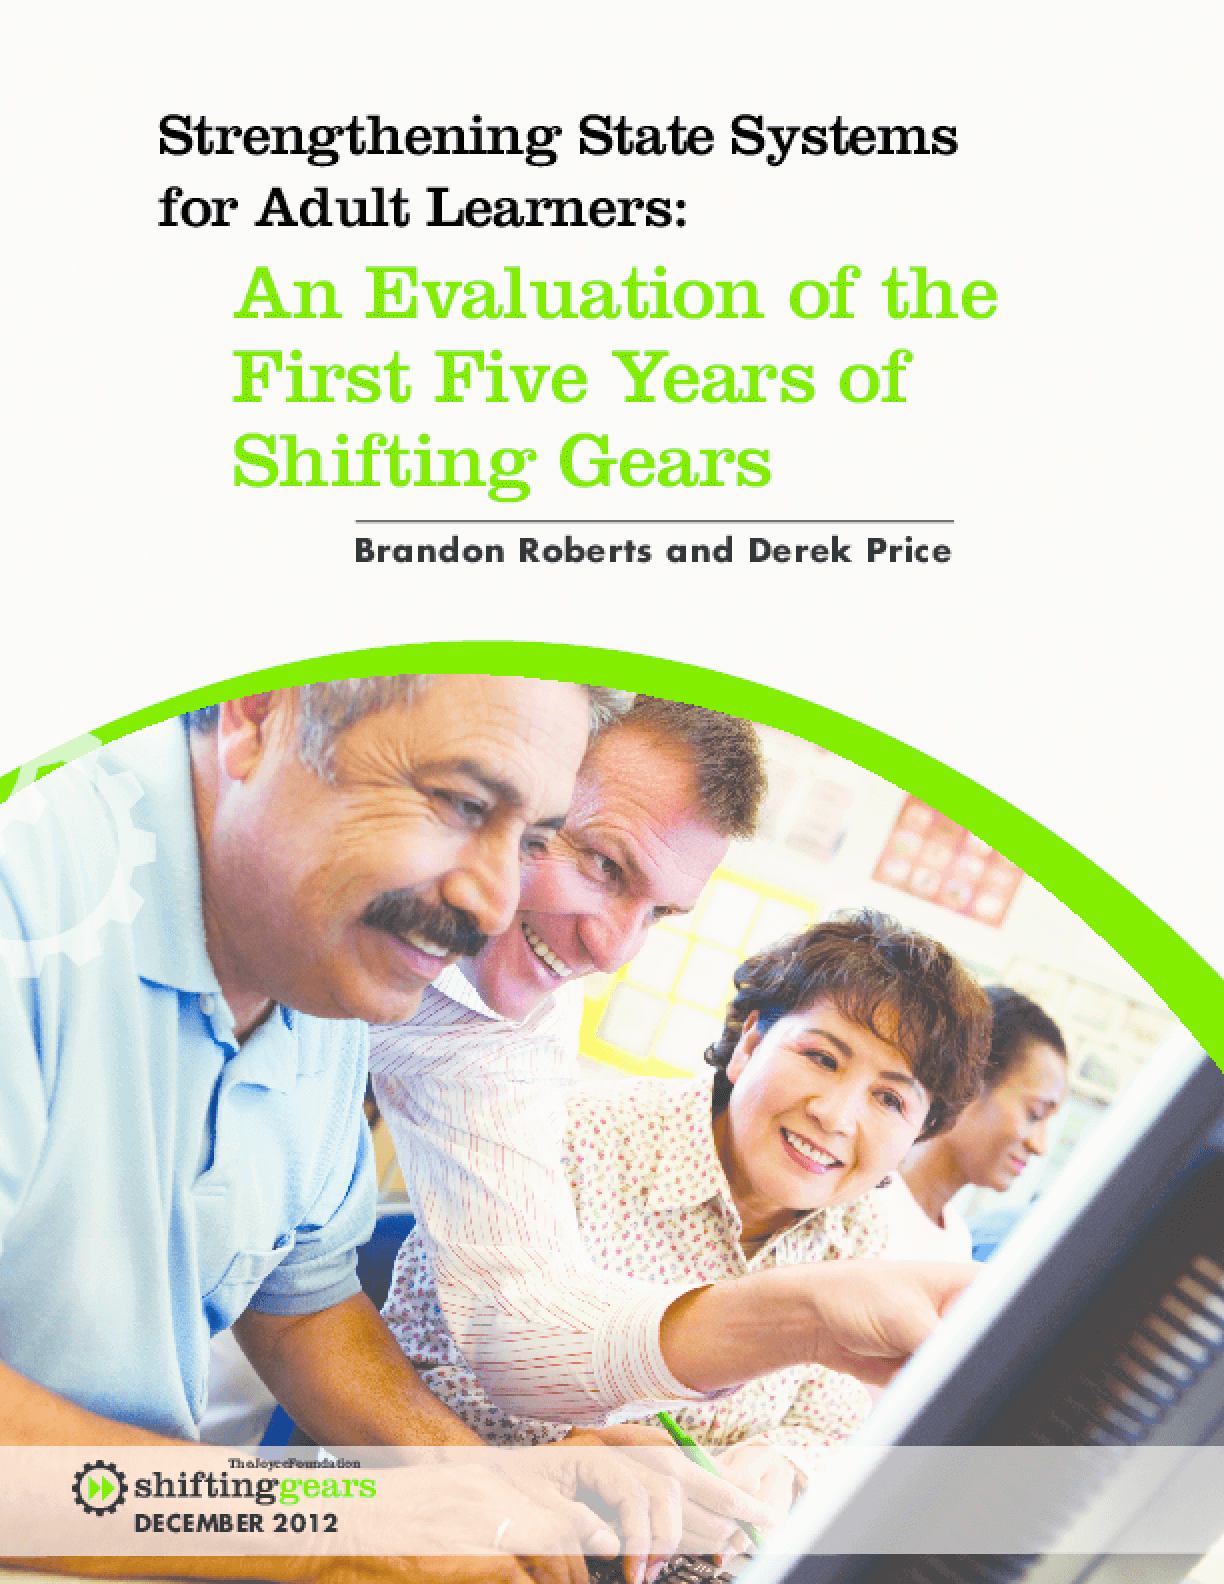 Strengthening State Systems for Adult Learners: An Evaluation of the First Five Years of Shifting Gears